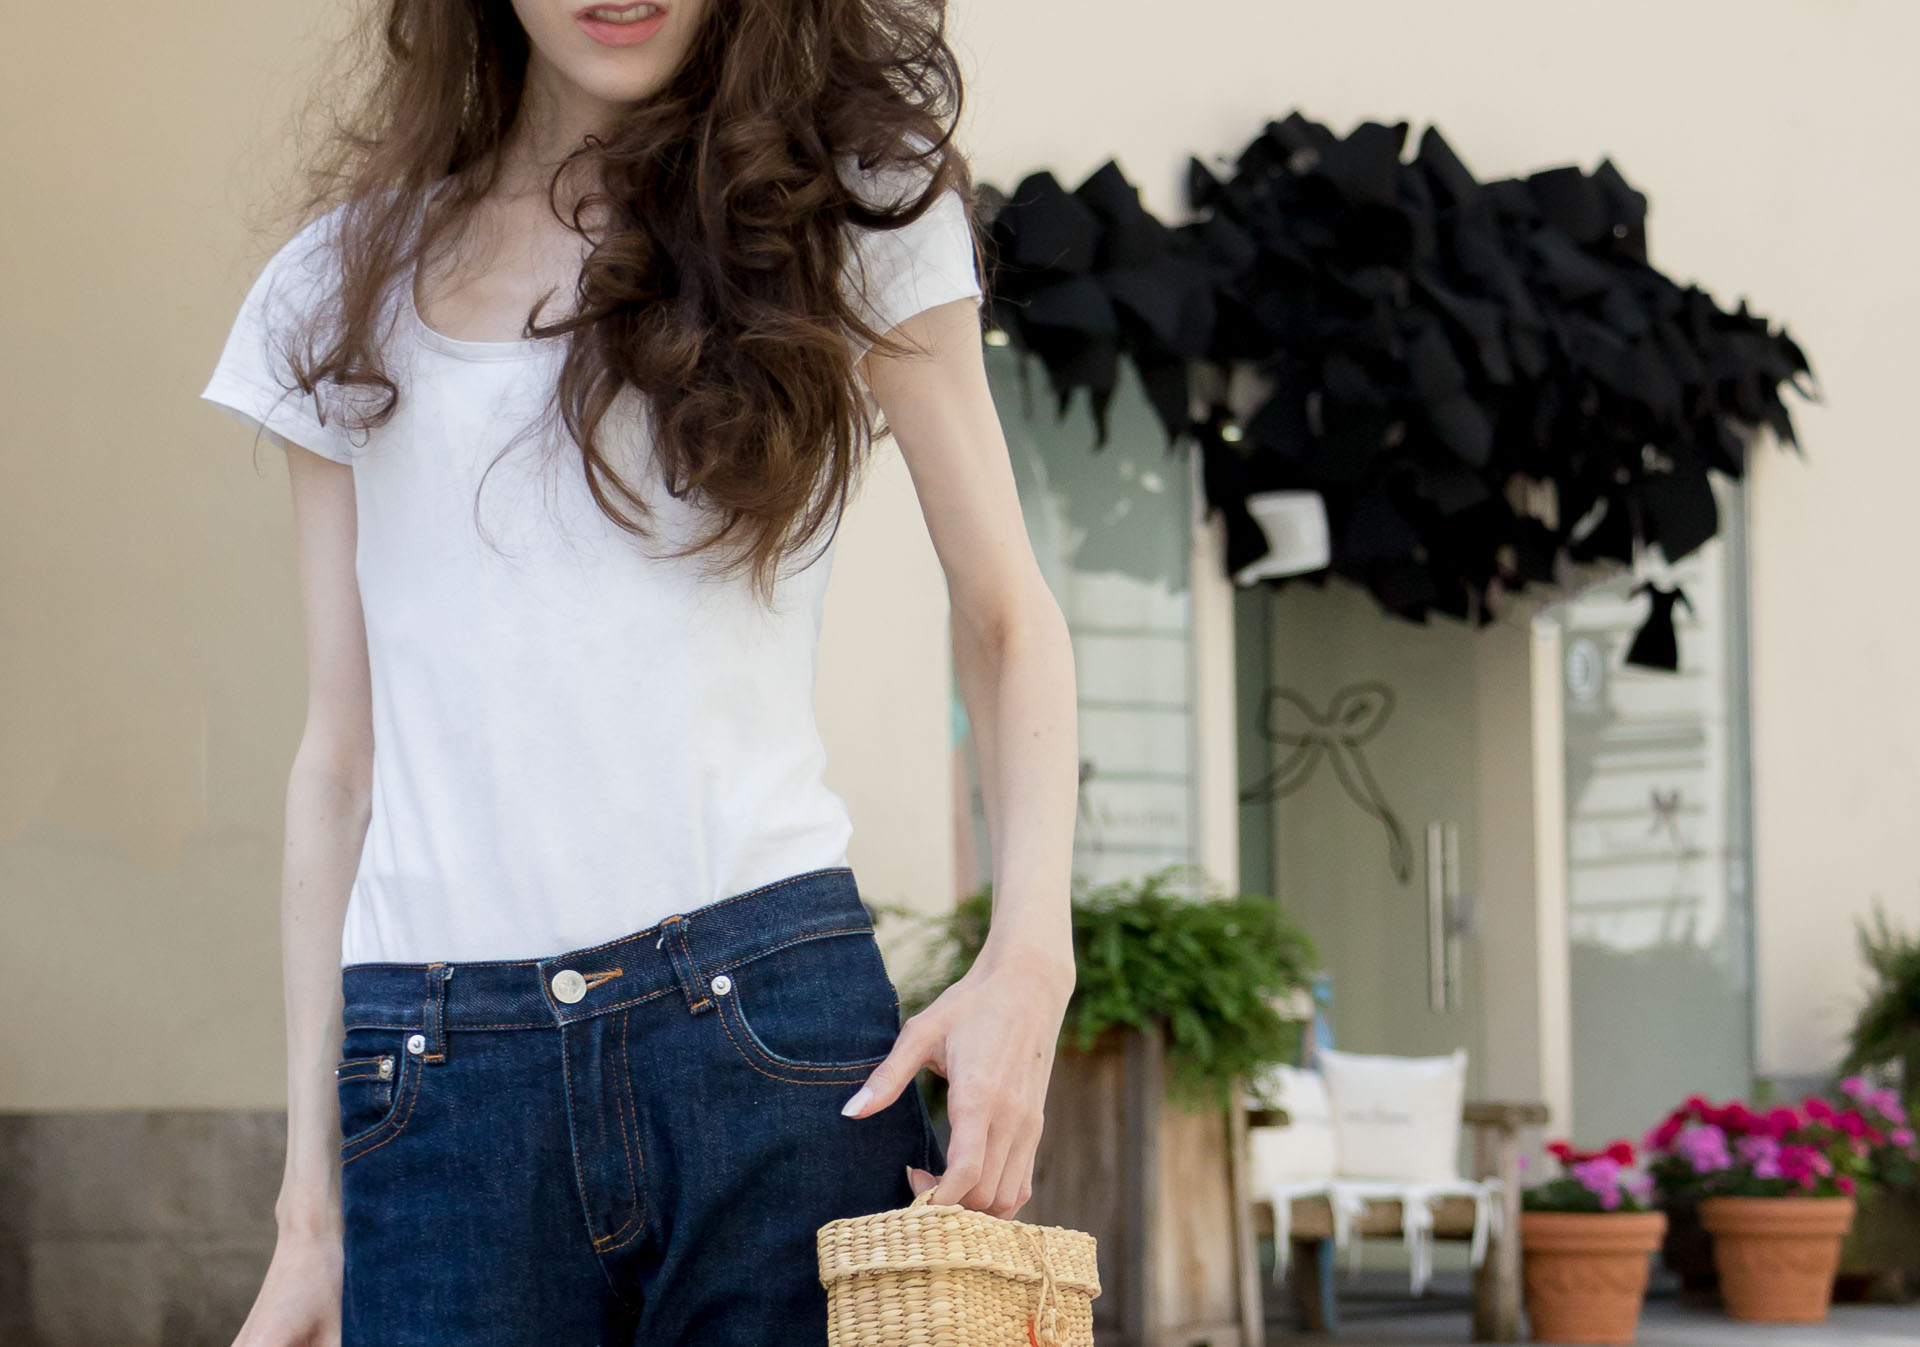 Veronika Lipar Fashion Editor of Brunette from Wall Street dressed in summer basics dark blue tapered jeans from A.P.C., H&M white T-shirt, Nannacay basket bag